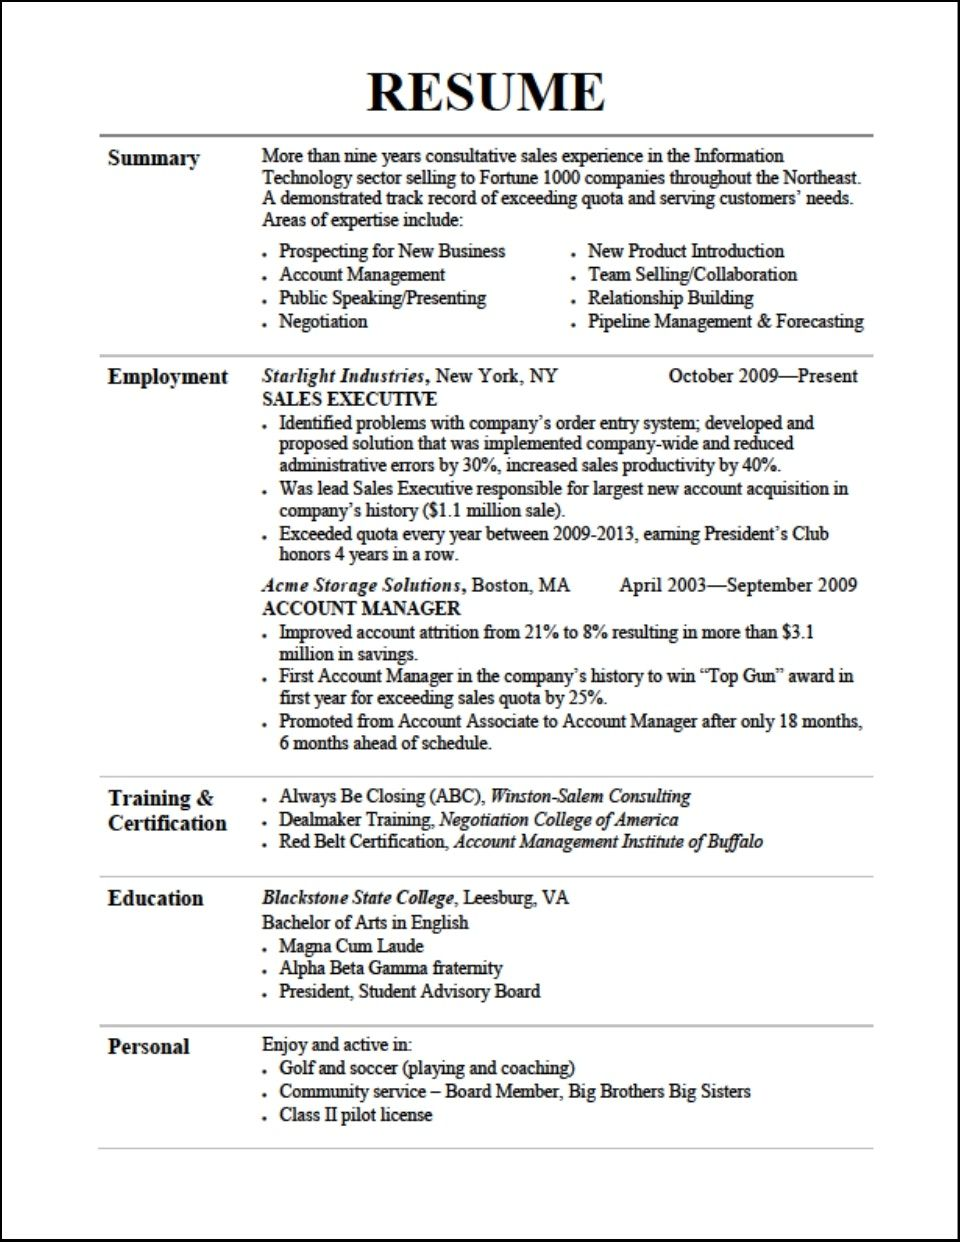 resume title examples templates job good writing tips for customer service icu nurse Resume Resume Title For Customer Service